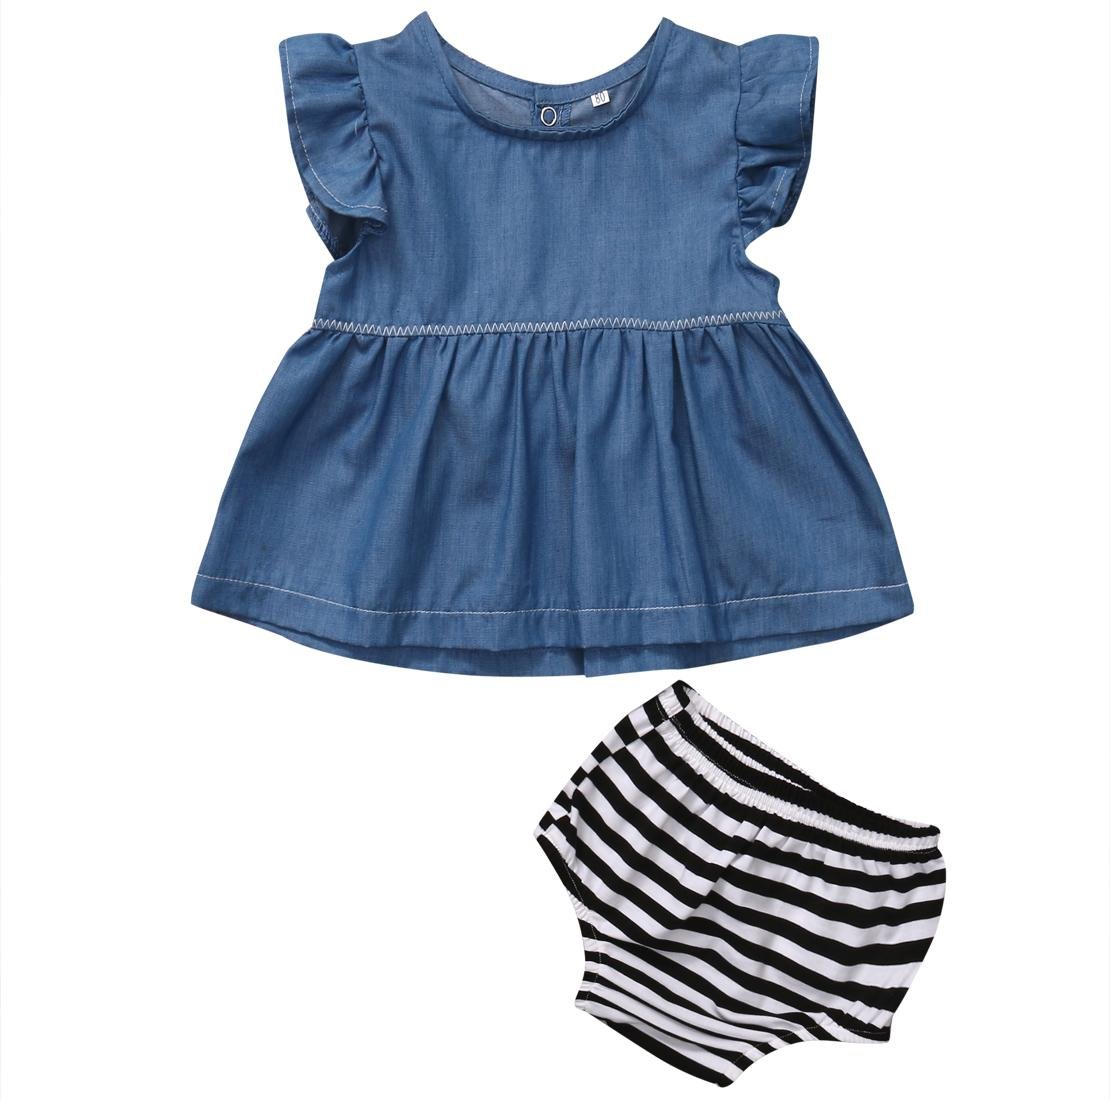 d9b0ae428c23 Baby Girls clothing Cowboy Color Tunic Dress + striped shorts bottom Kids  outfits summer baby girl sets 0-24M